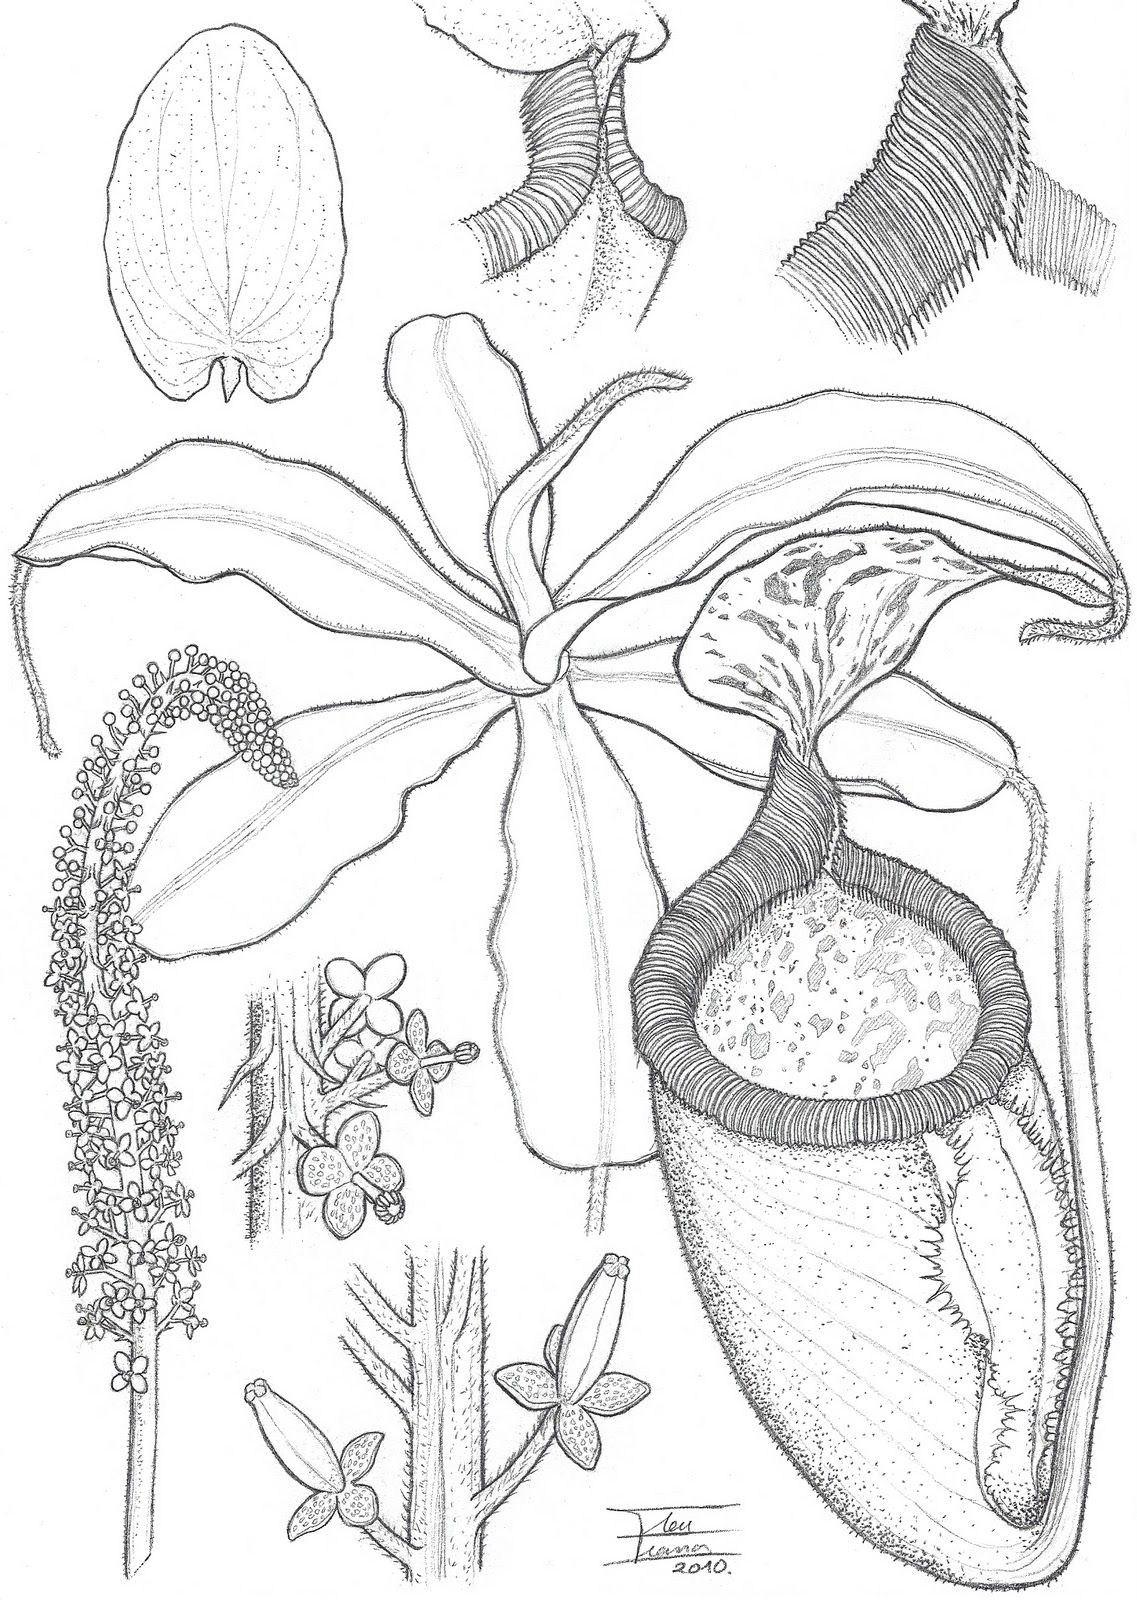 Carnivorous Plant Sketches Displaying 18 Gt Images For